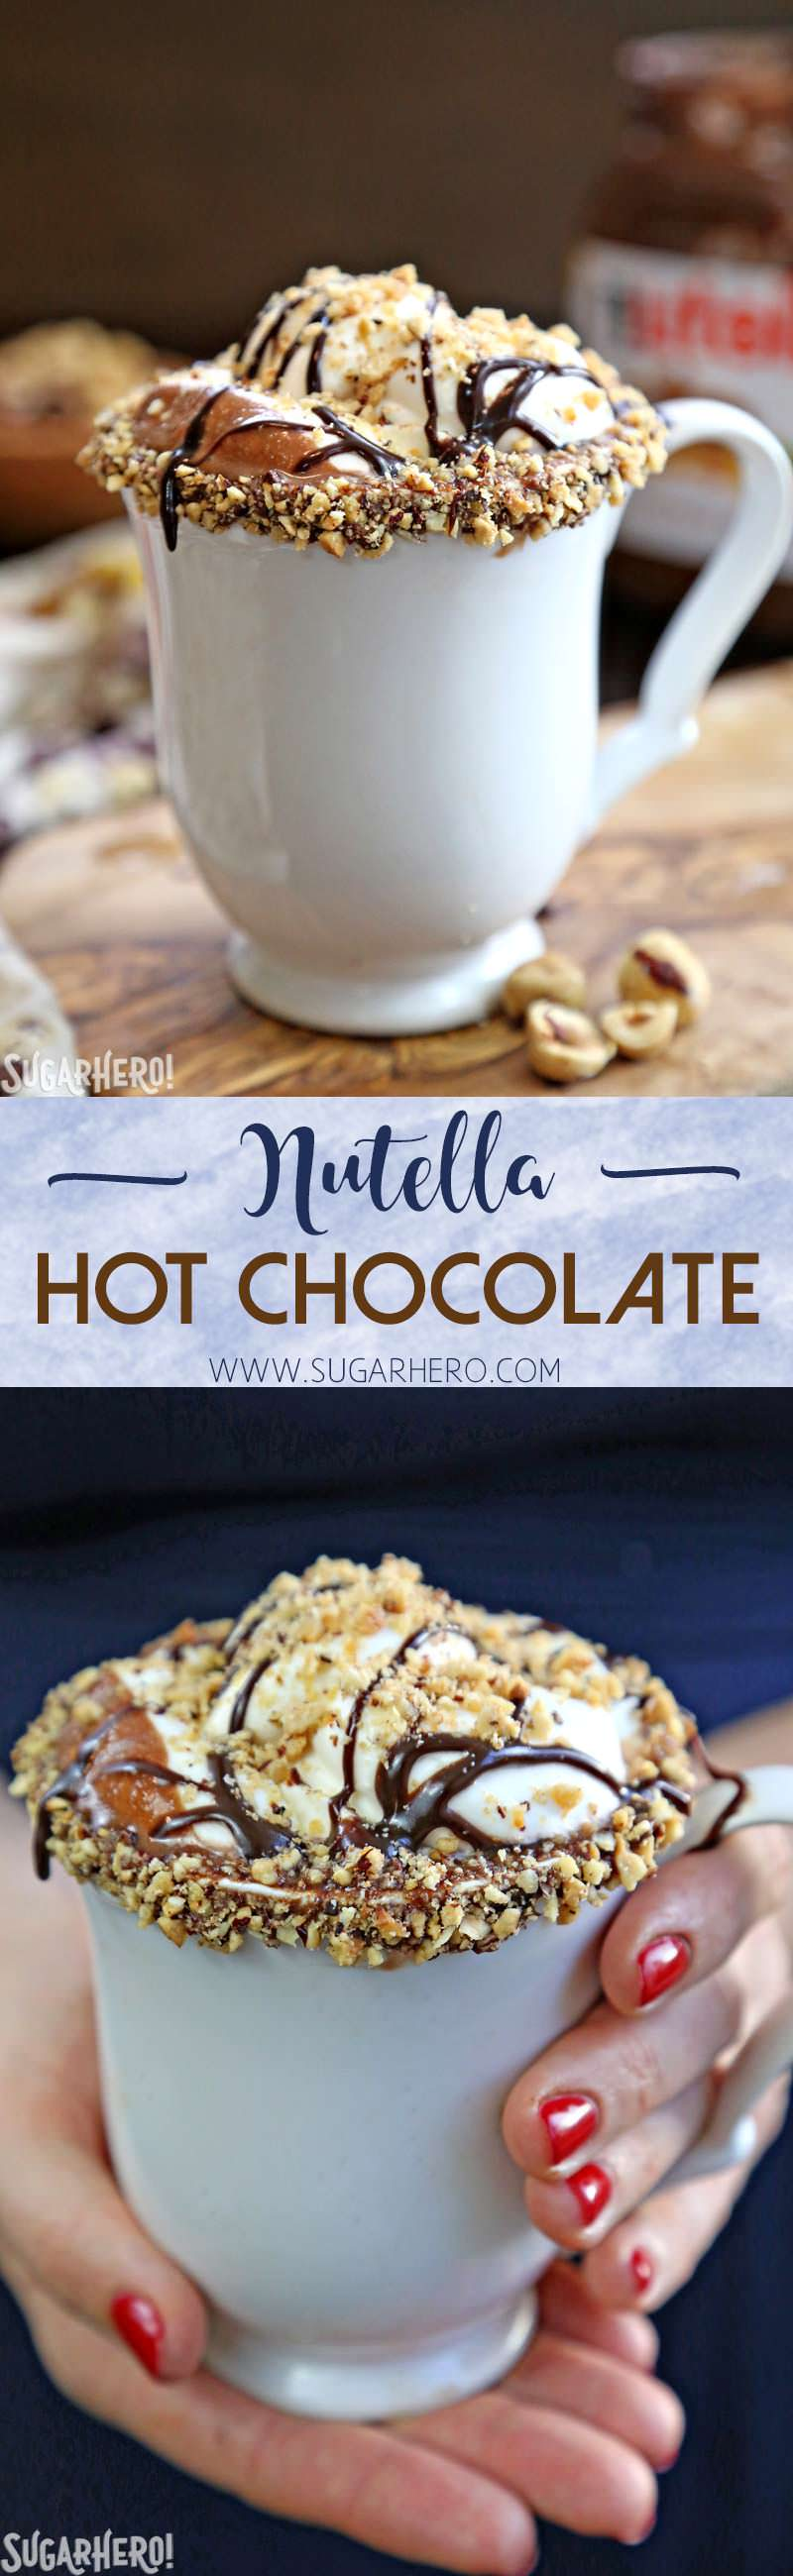 Nutella Hot Chocolate – a rich, indulgent sipping chocolate with Nutella mixed right in!   From SugarHero.com